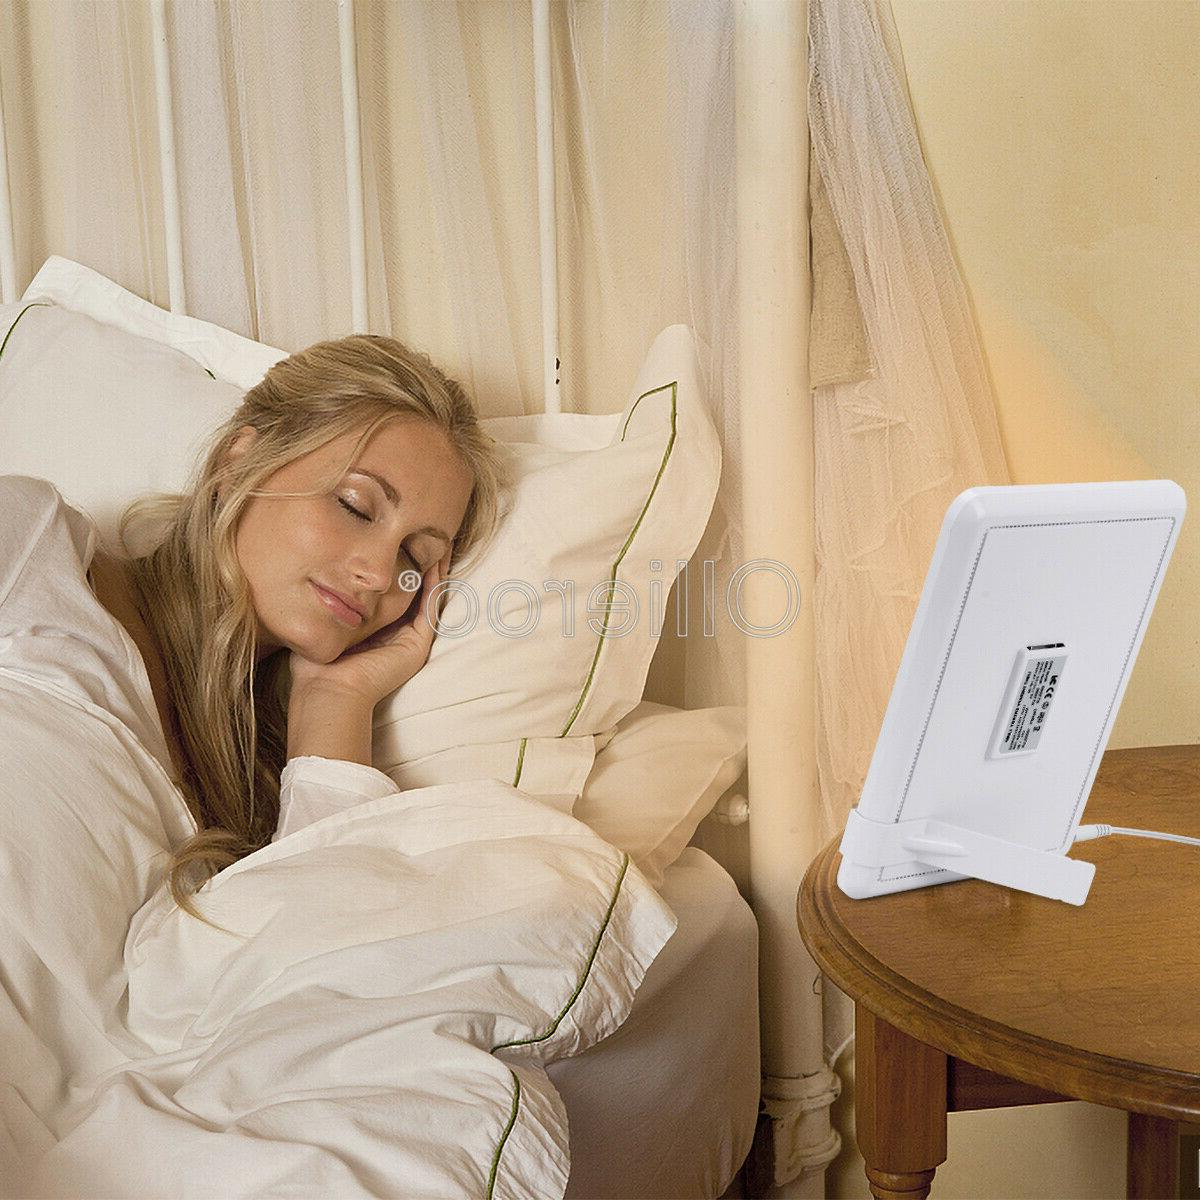 LED Sad Light Therapy Energy Lamp HP-06 3 Models 10,000 lux